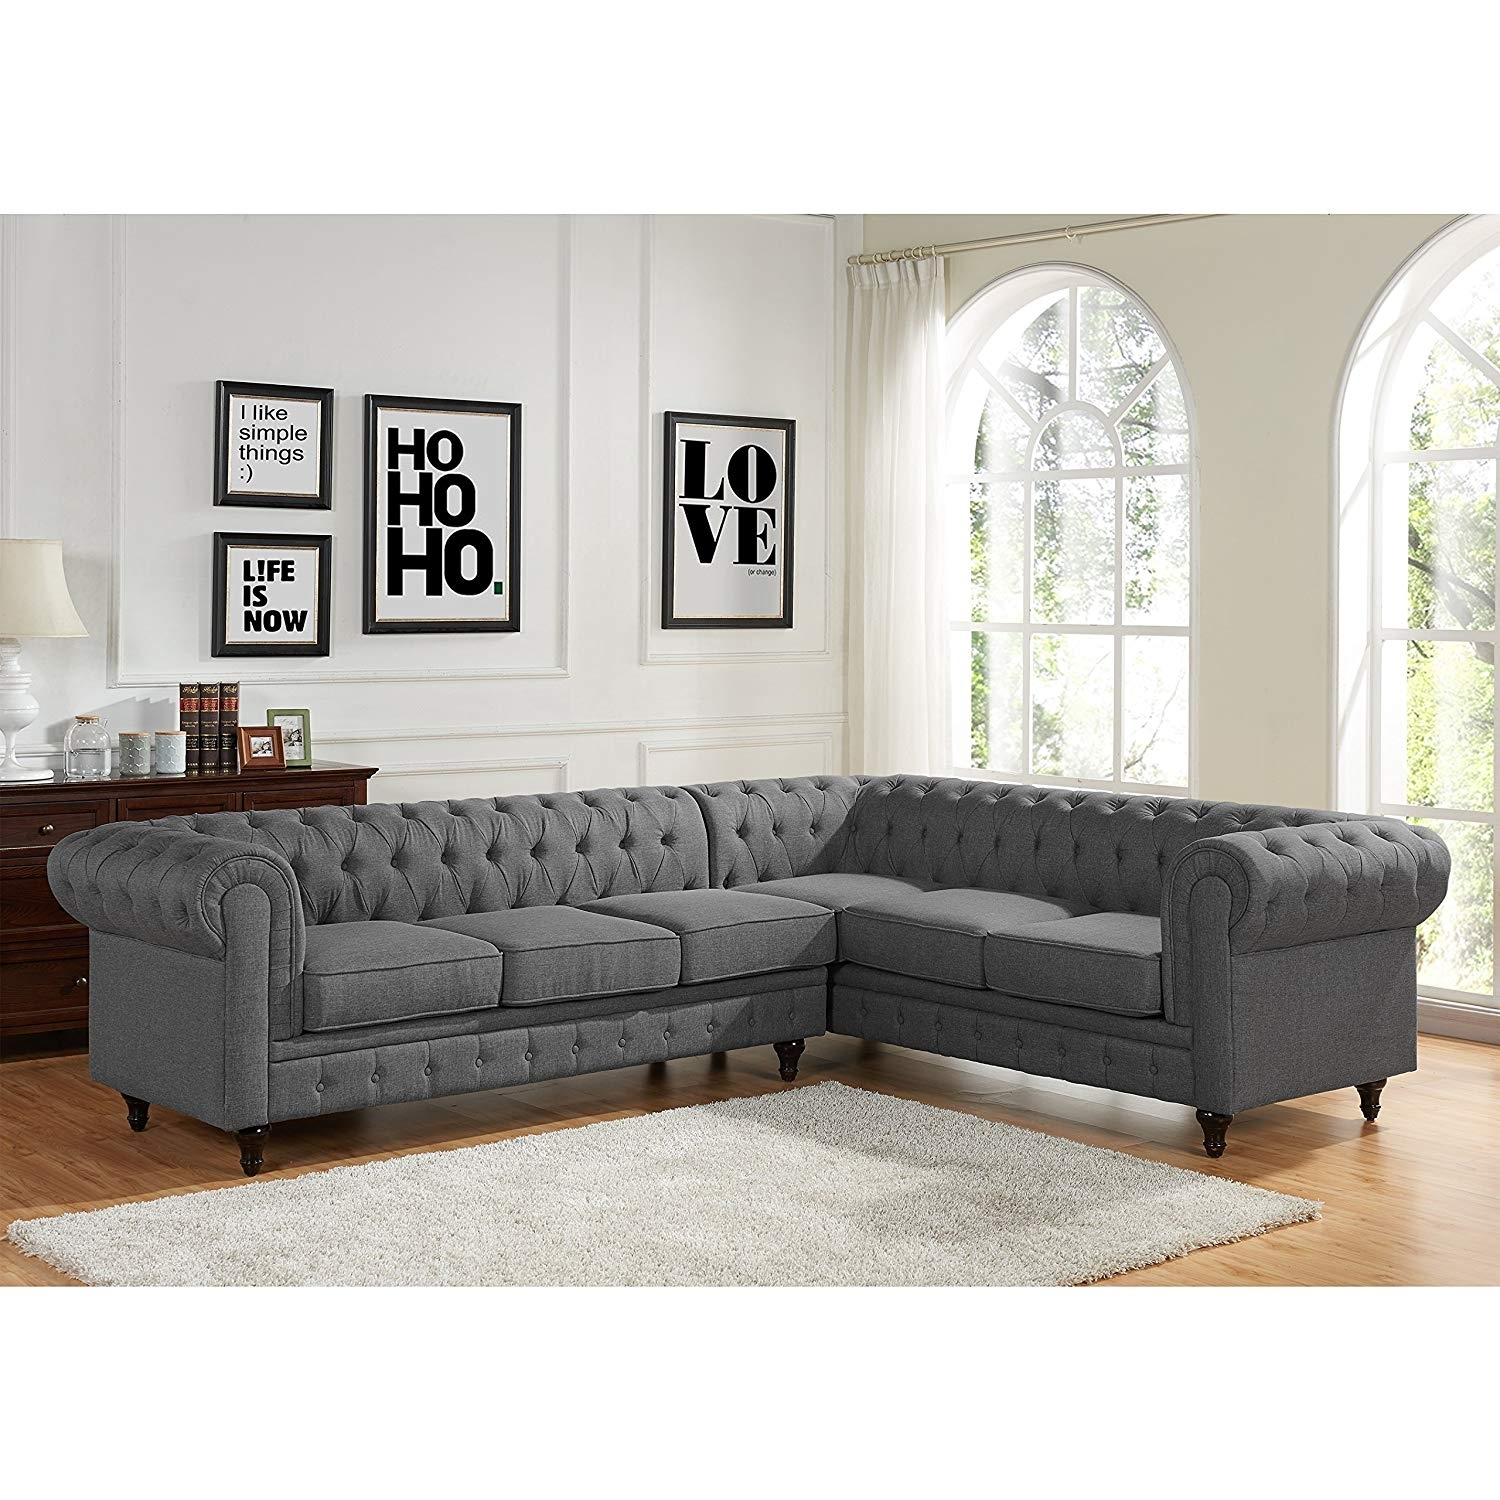 Sophia Oversized Chaise Sectional Sofa Fresh Amazon Us Pride regarding Egan Ii Cement Sofa Sectionals With Reversible Chaise (Image 26 of 30)